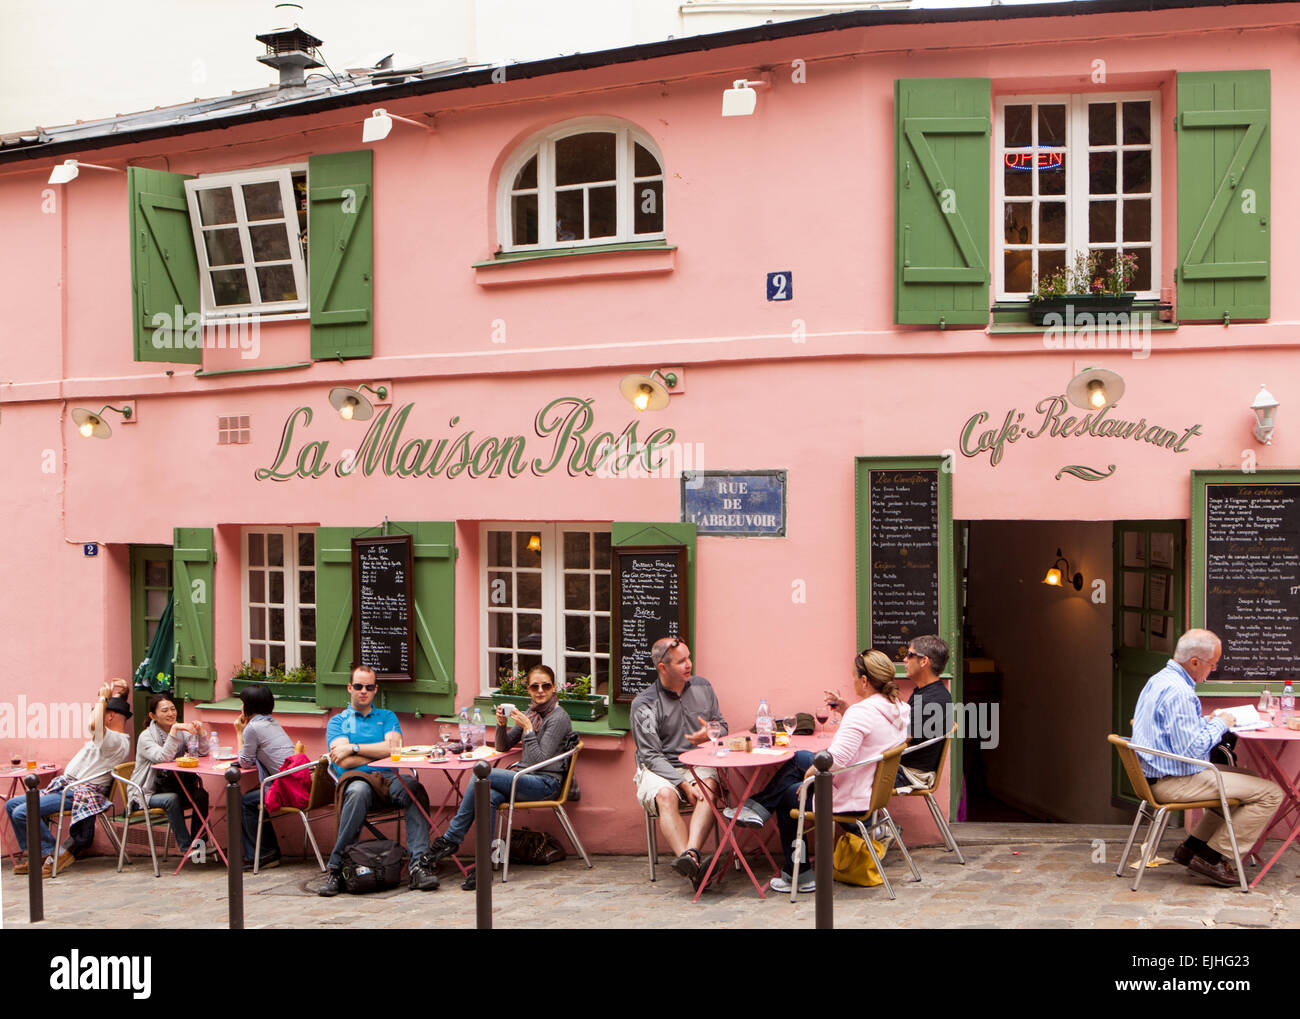 Outdoor eating at la maison rose cafe montmartre paris france